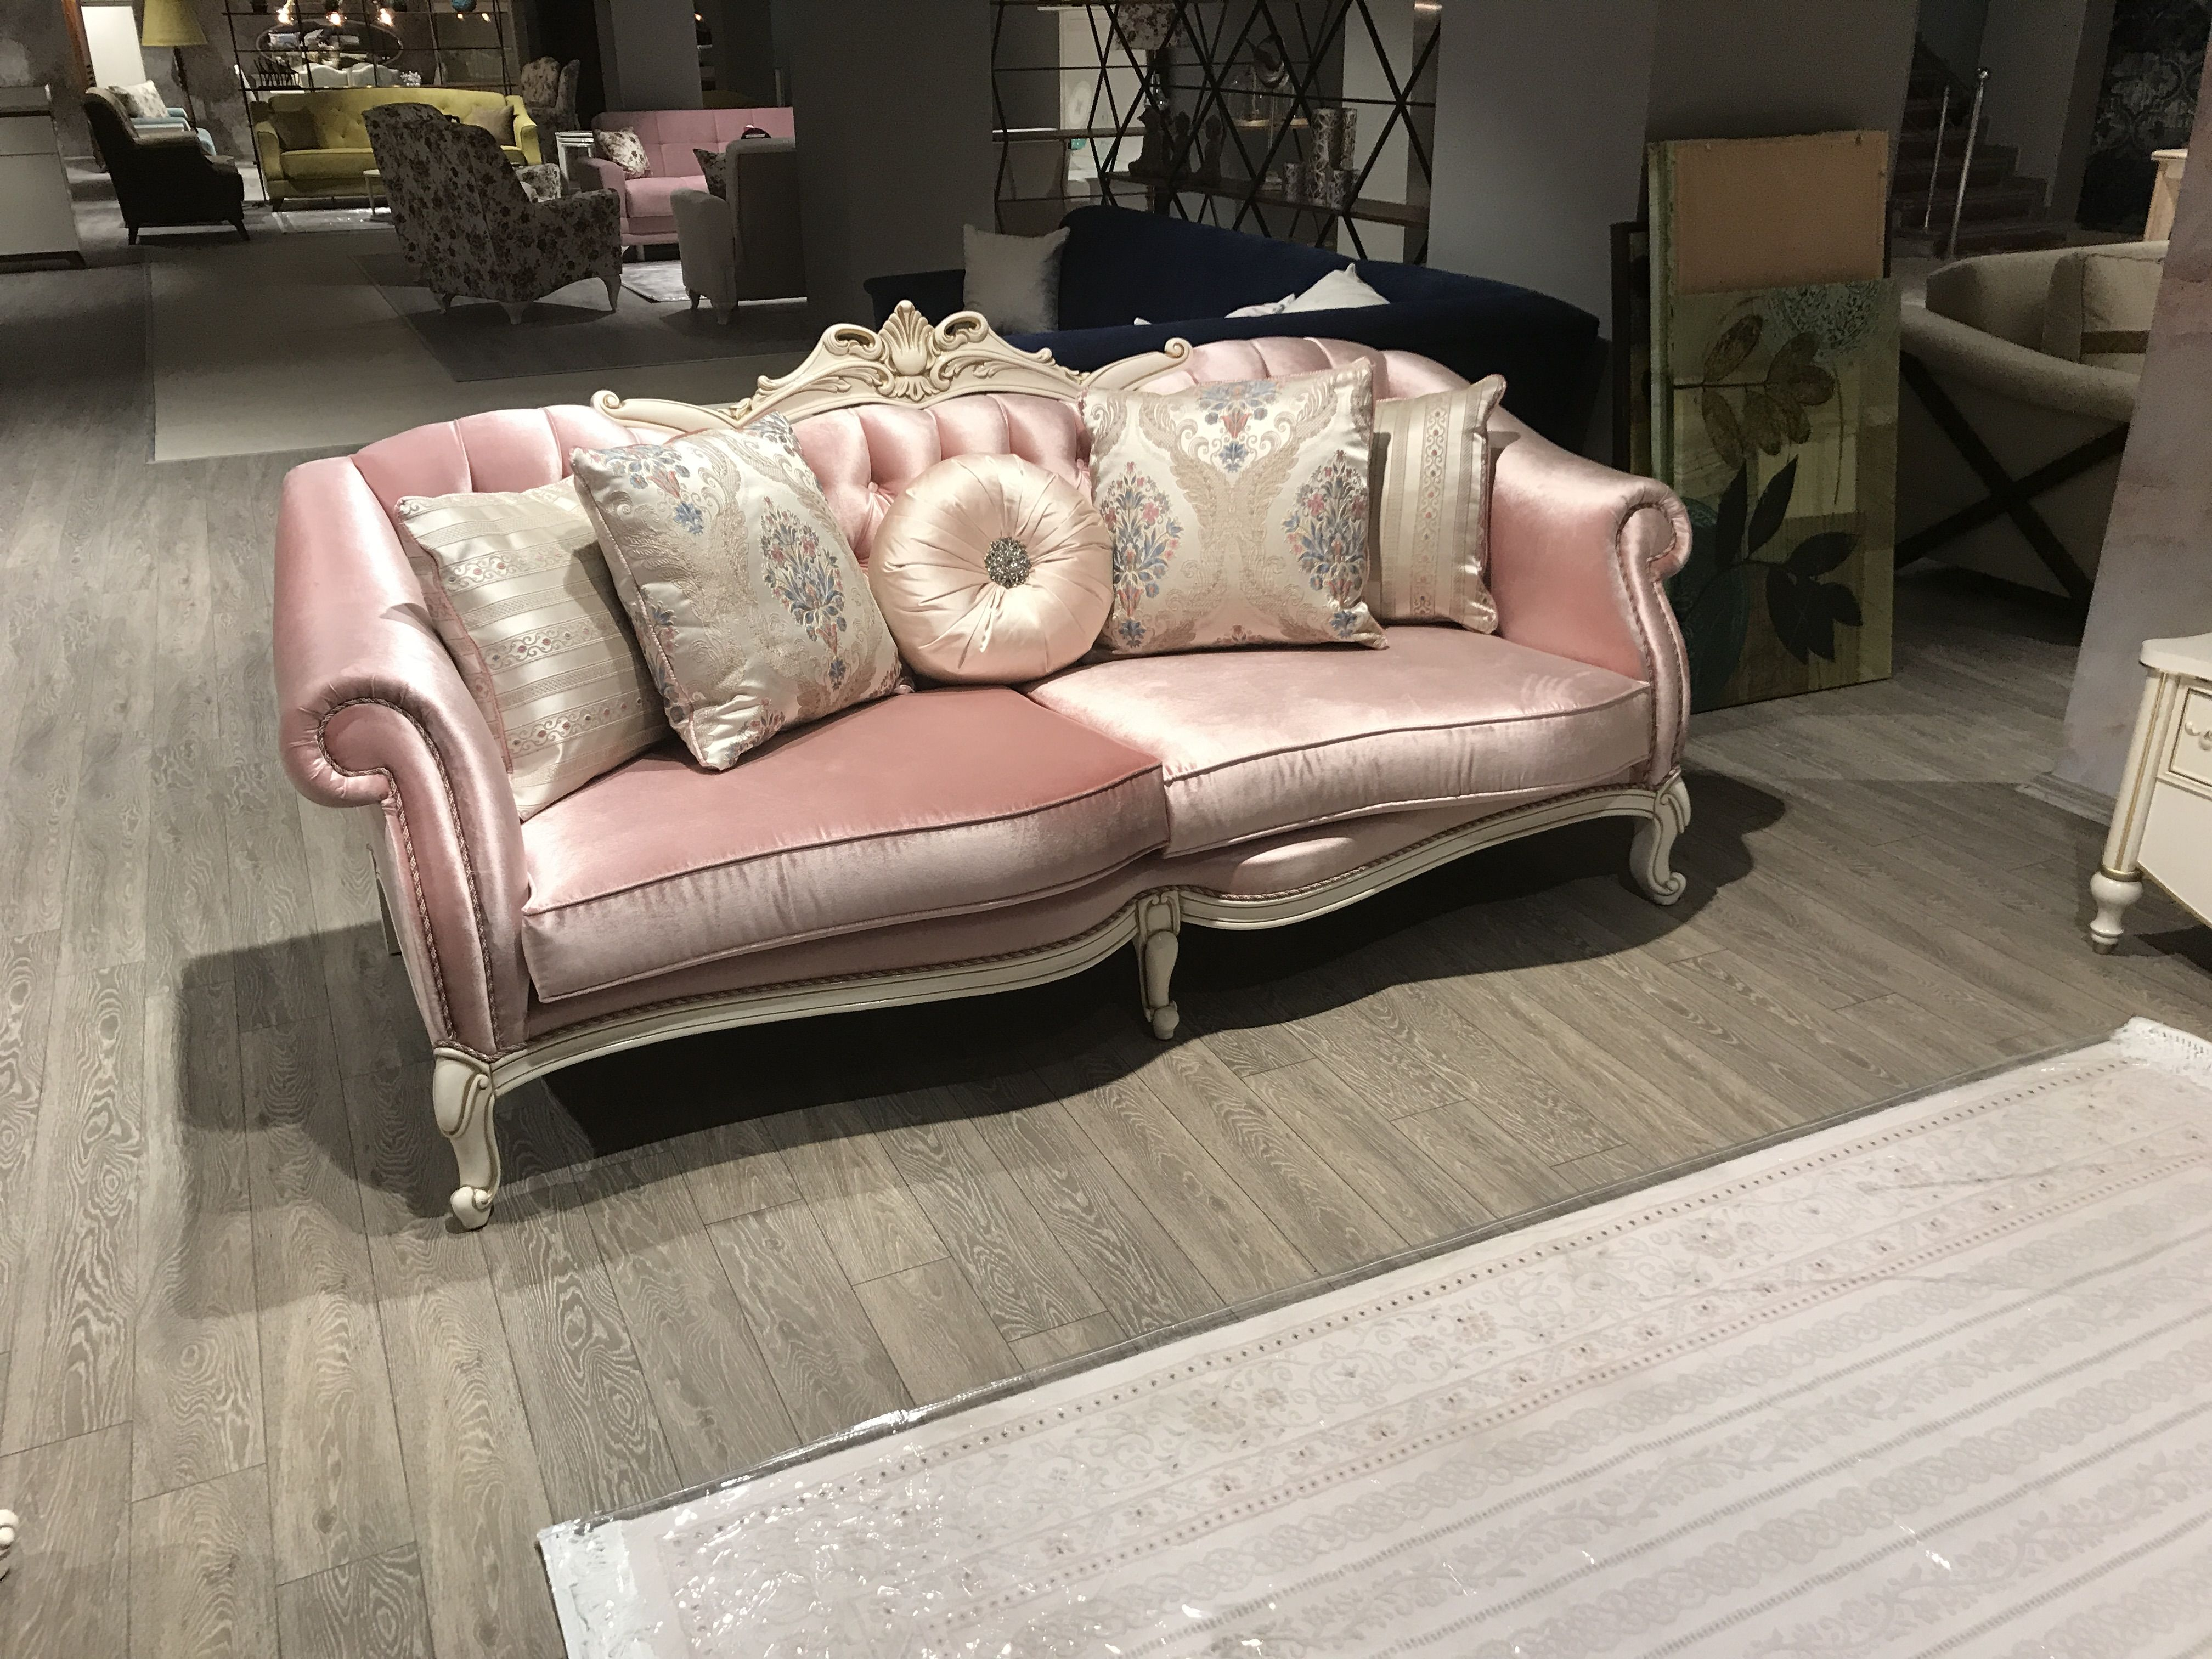 Gusto Couch Istikbal Hannover Hannover Istikbal Möbelhaus